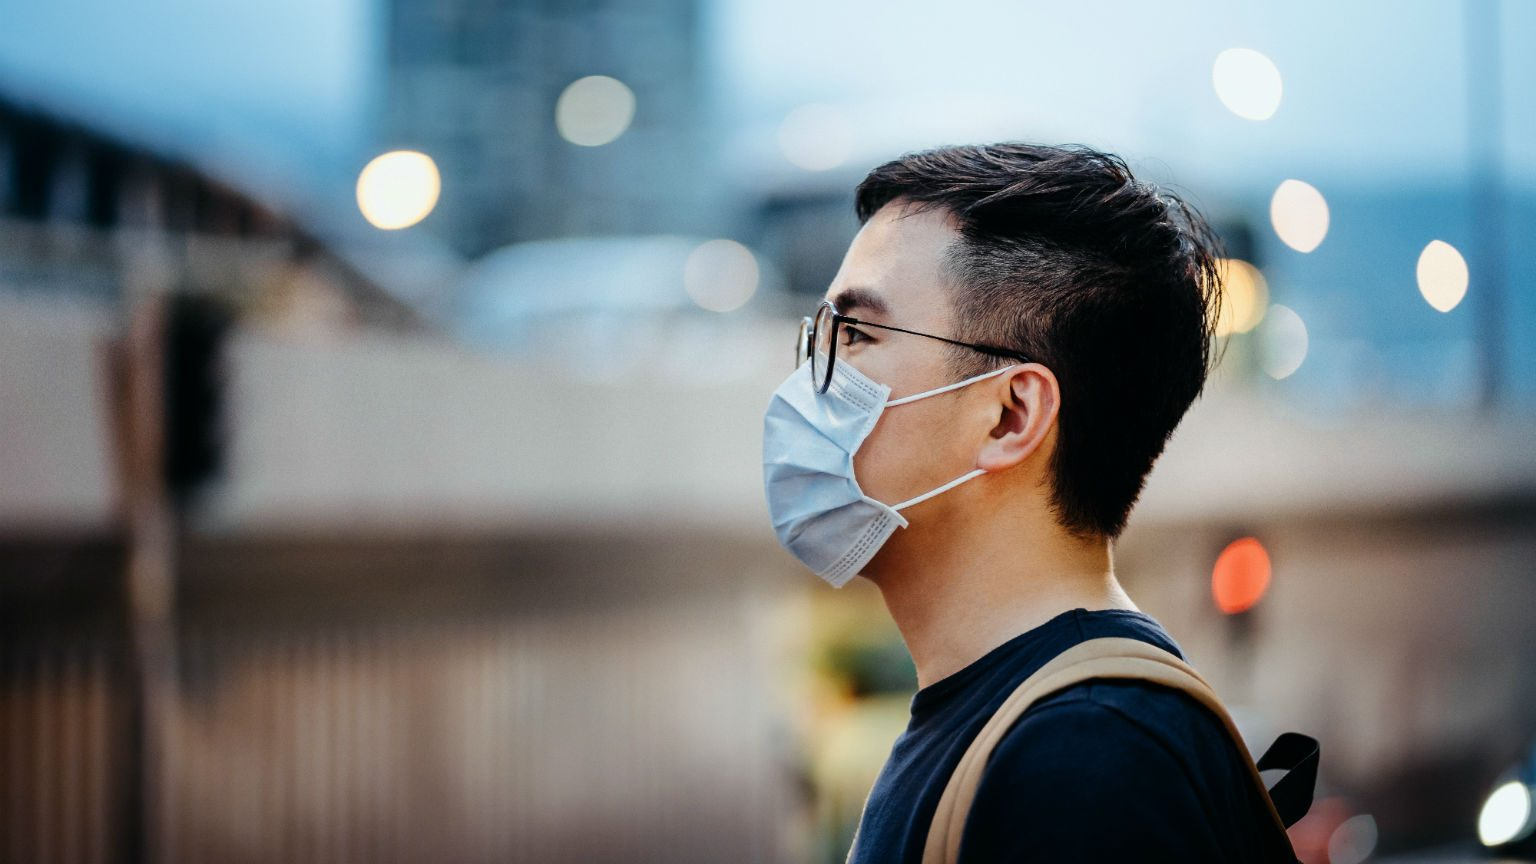 Man wearing surgical mask